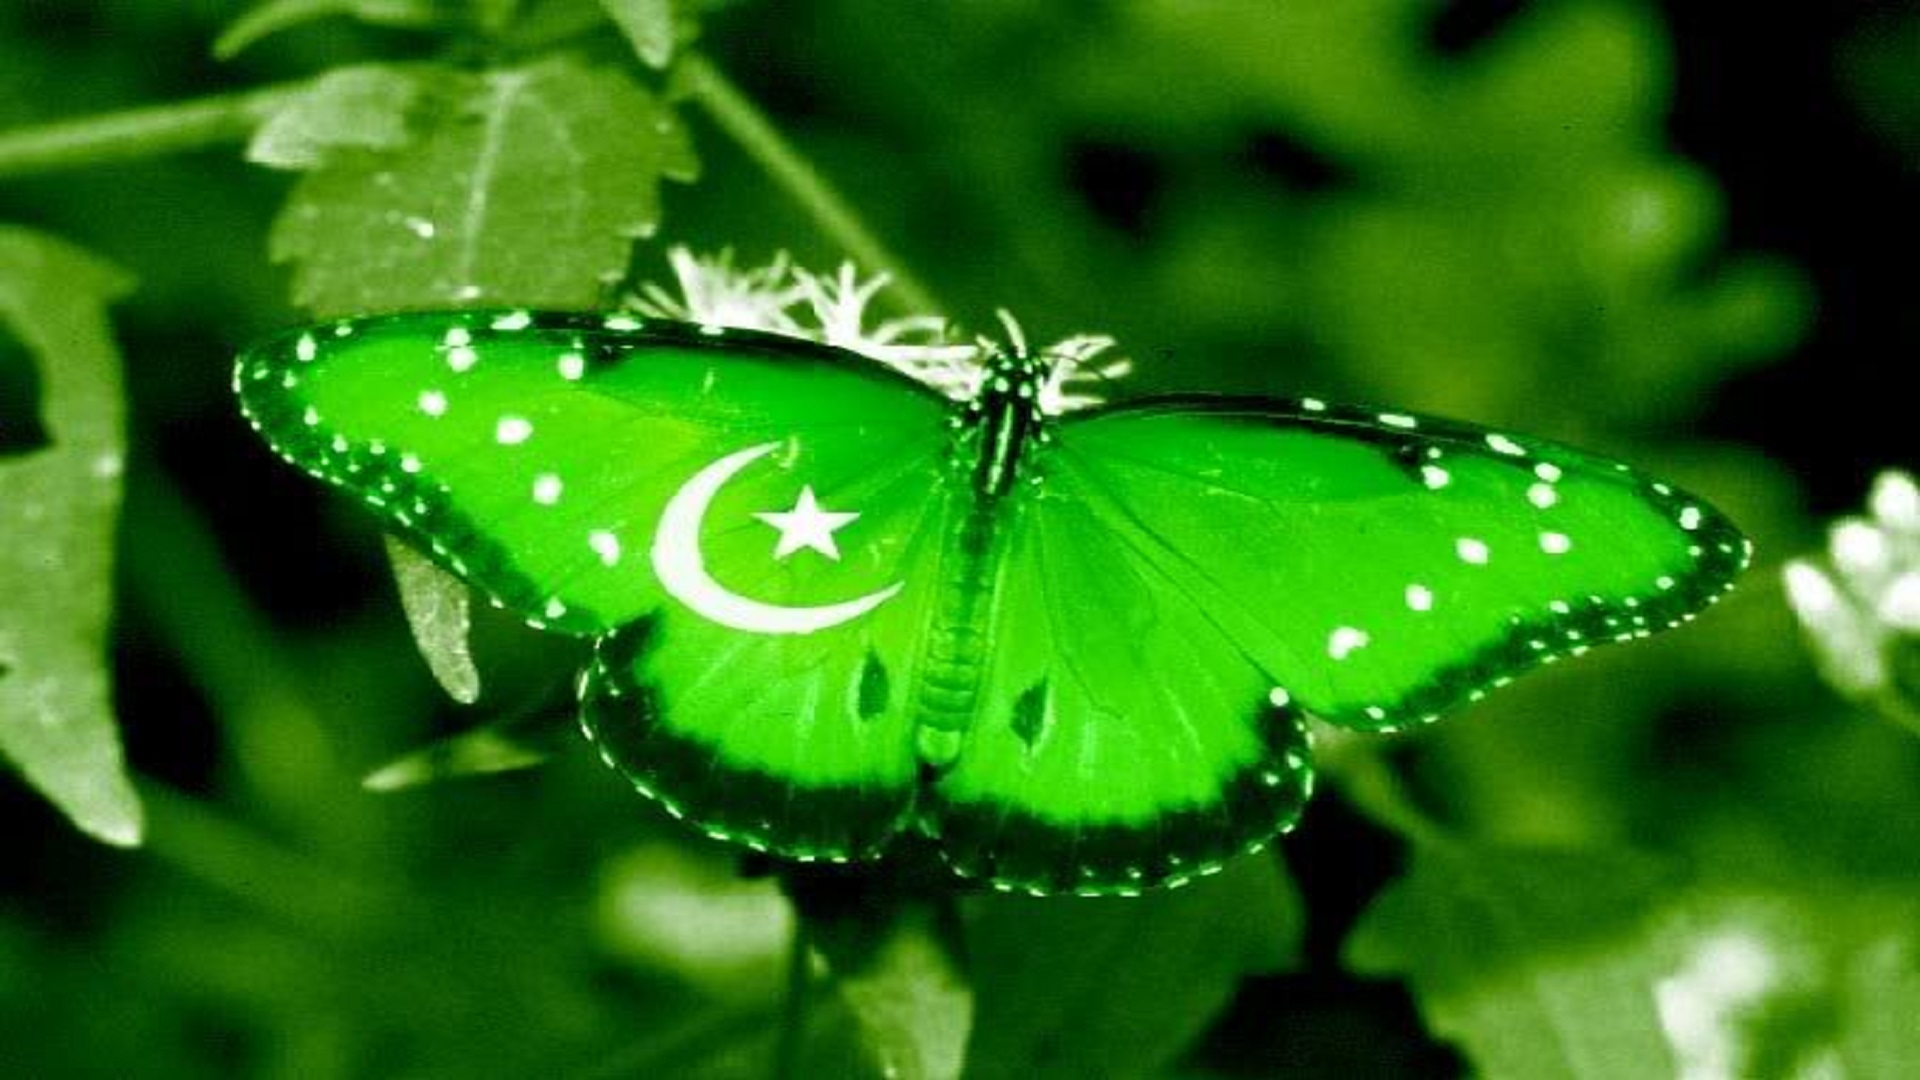 Pakistan Best Wallpapers Hd Free For You Hd Wallpaper